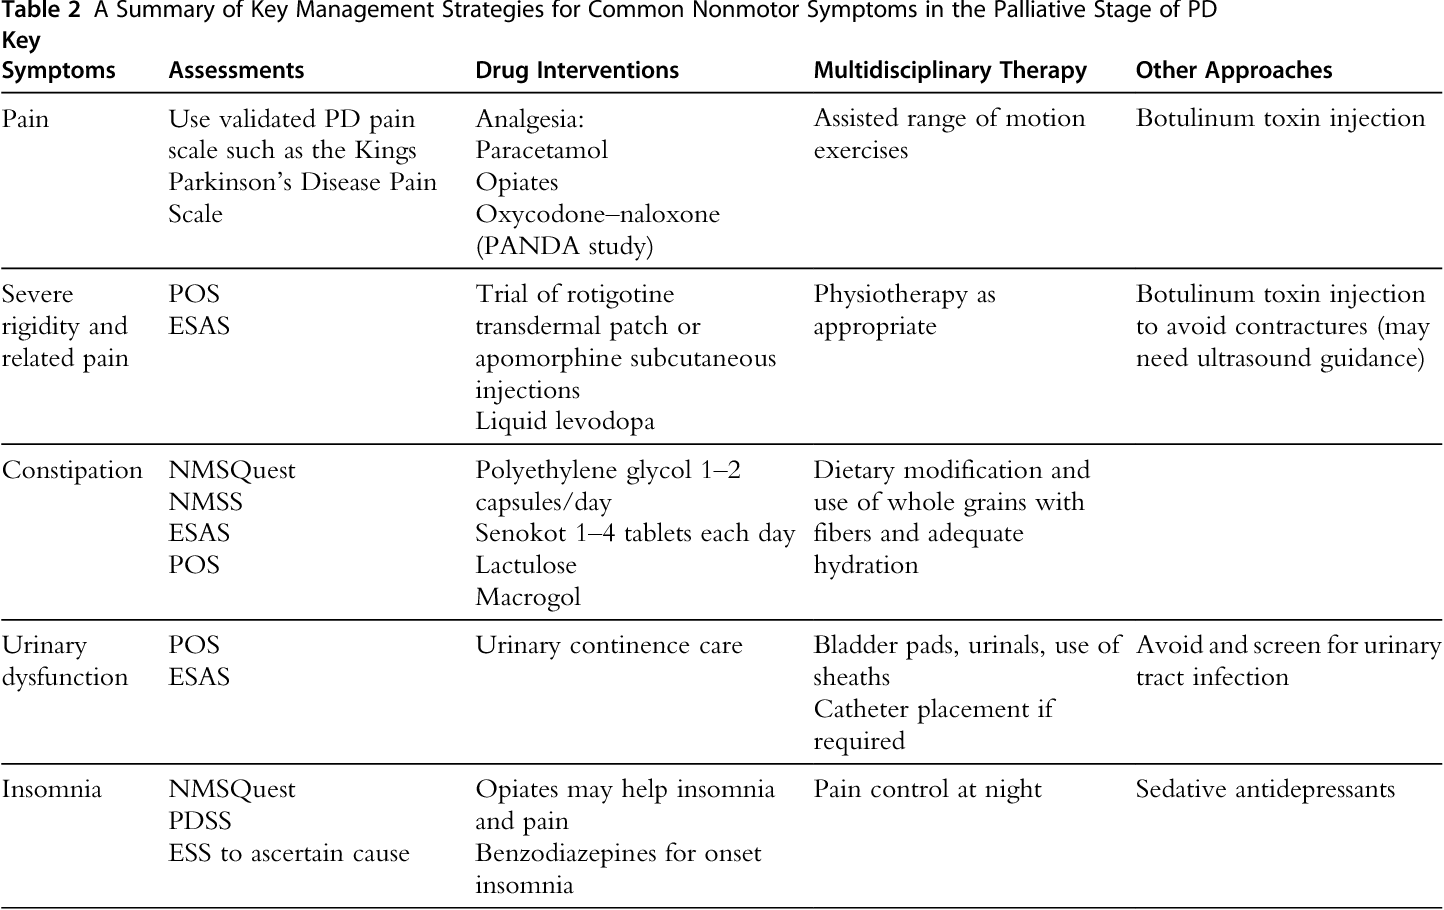 Table 2 from Palliative Care and Nonmotor Symptoms in